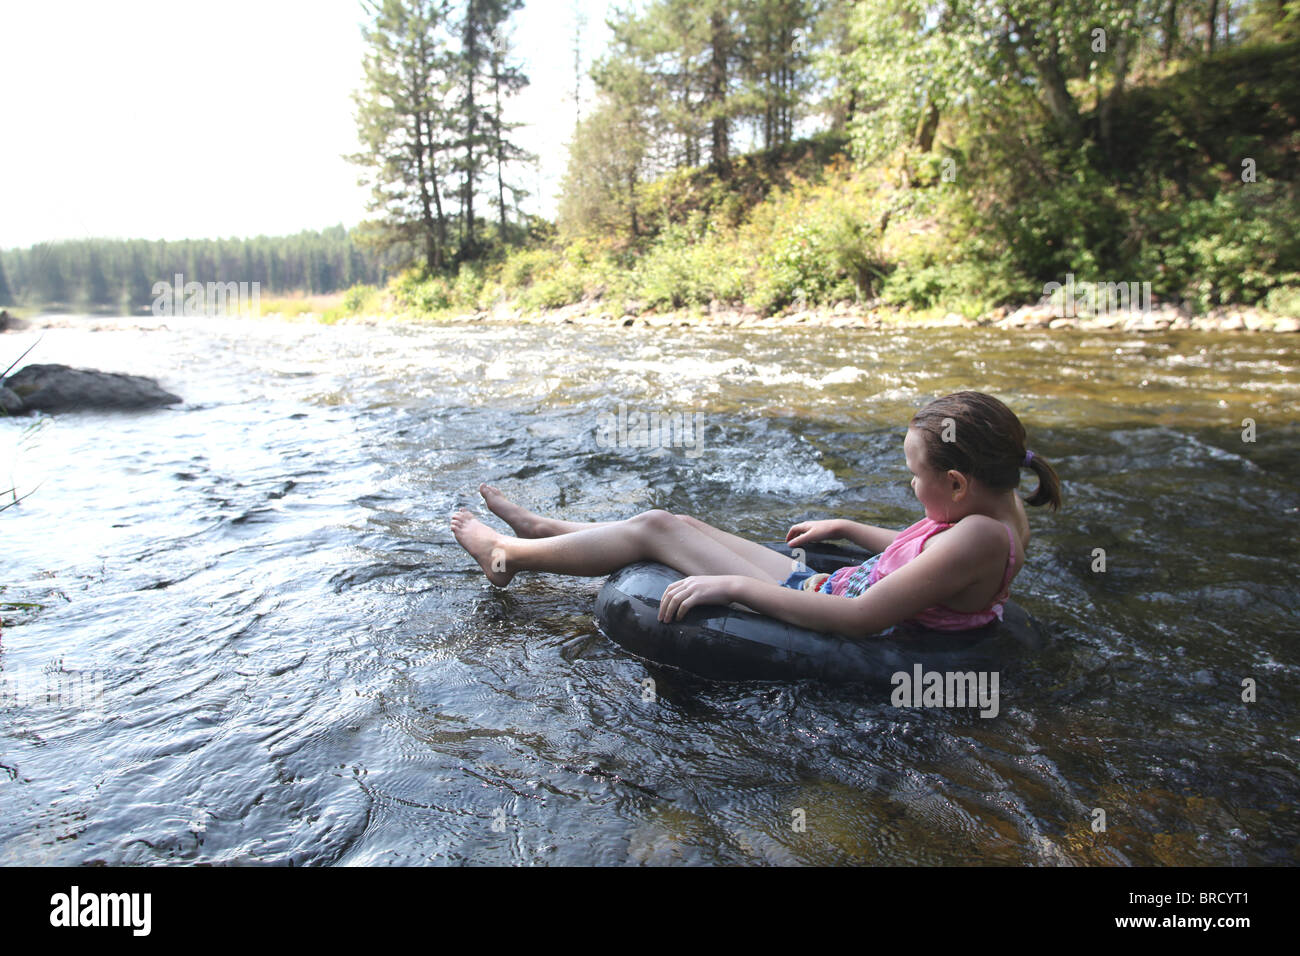 young girl floating down river in inner tube - Stock Image